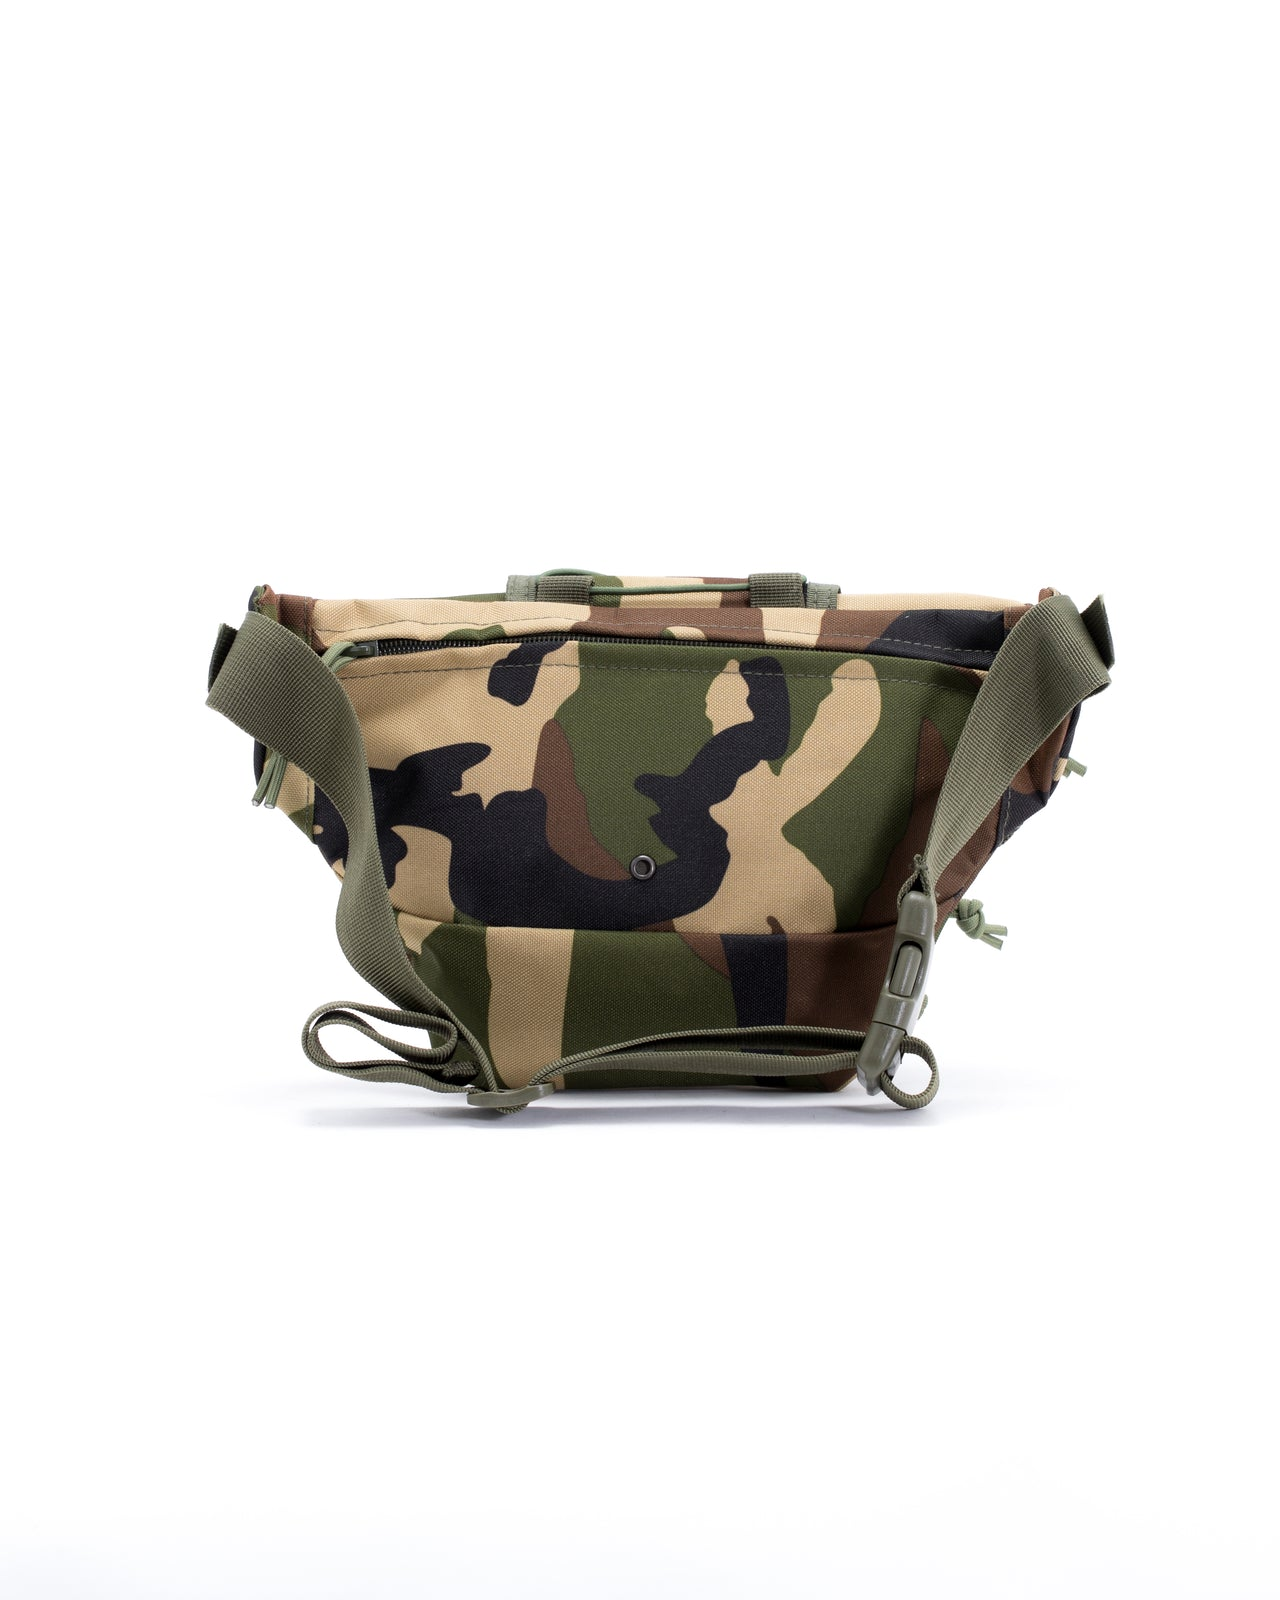 The Hip Pack - Color: Woodland Camo | Multi